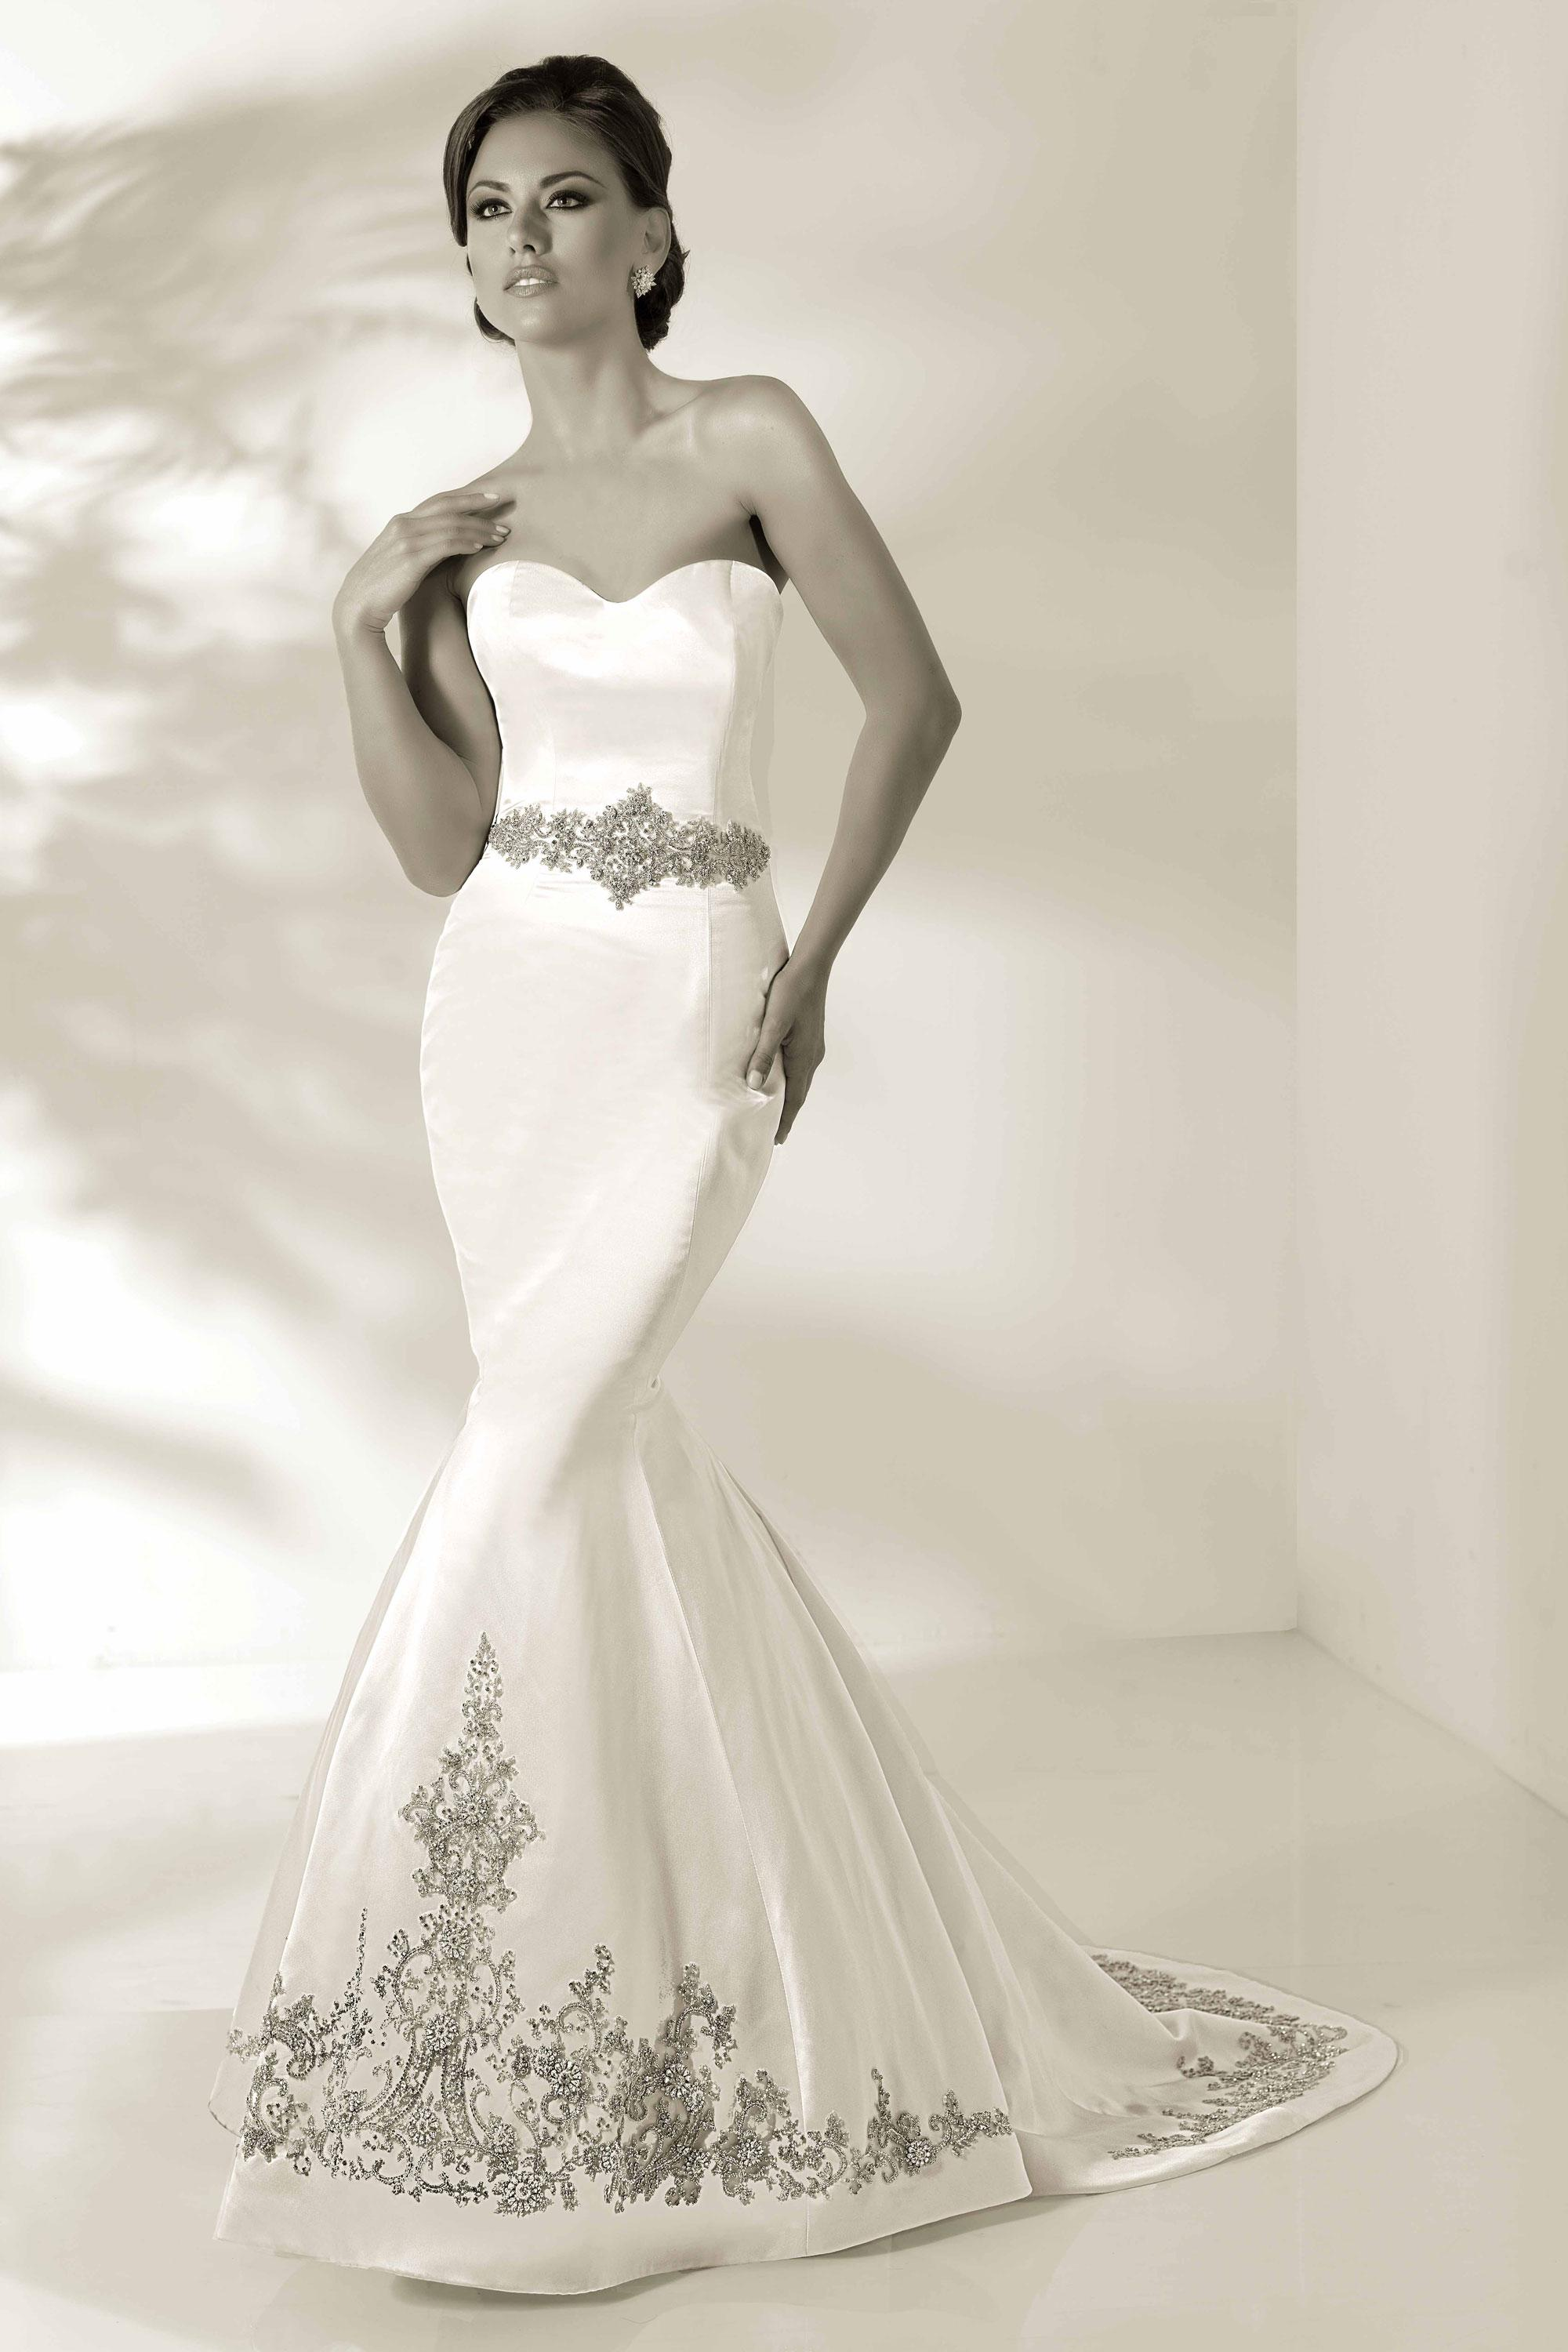 Sweetheart Wedding Dresses Use Many Varieties Materials In The Design Offer Interest And Fascination To Sophisticated Styles